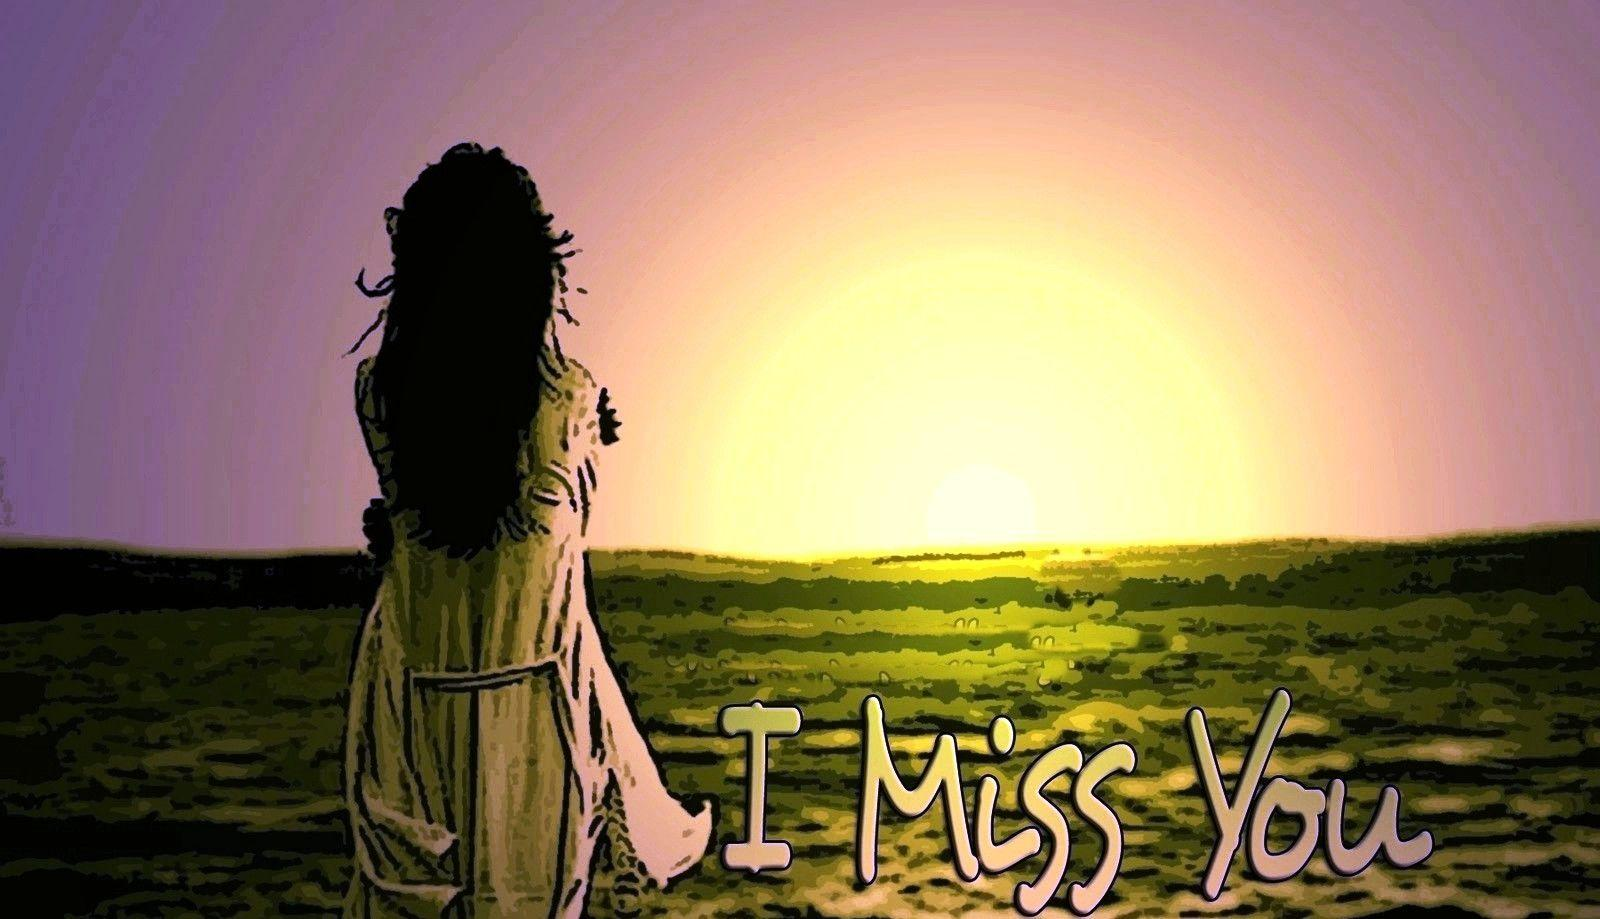 Wallpaper Love You Miss You : I Miss You Wallpapers - Wallpaper cave